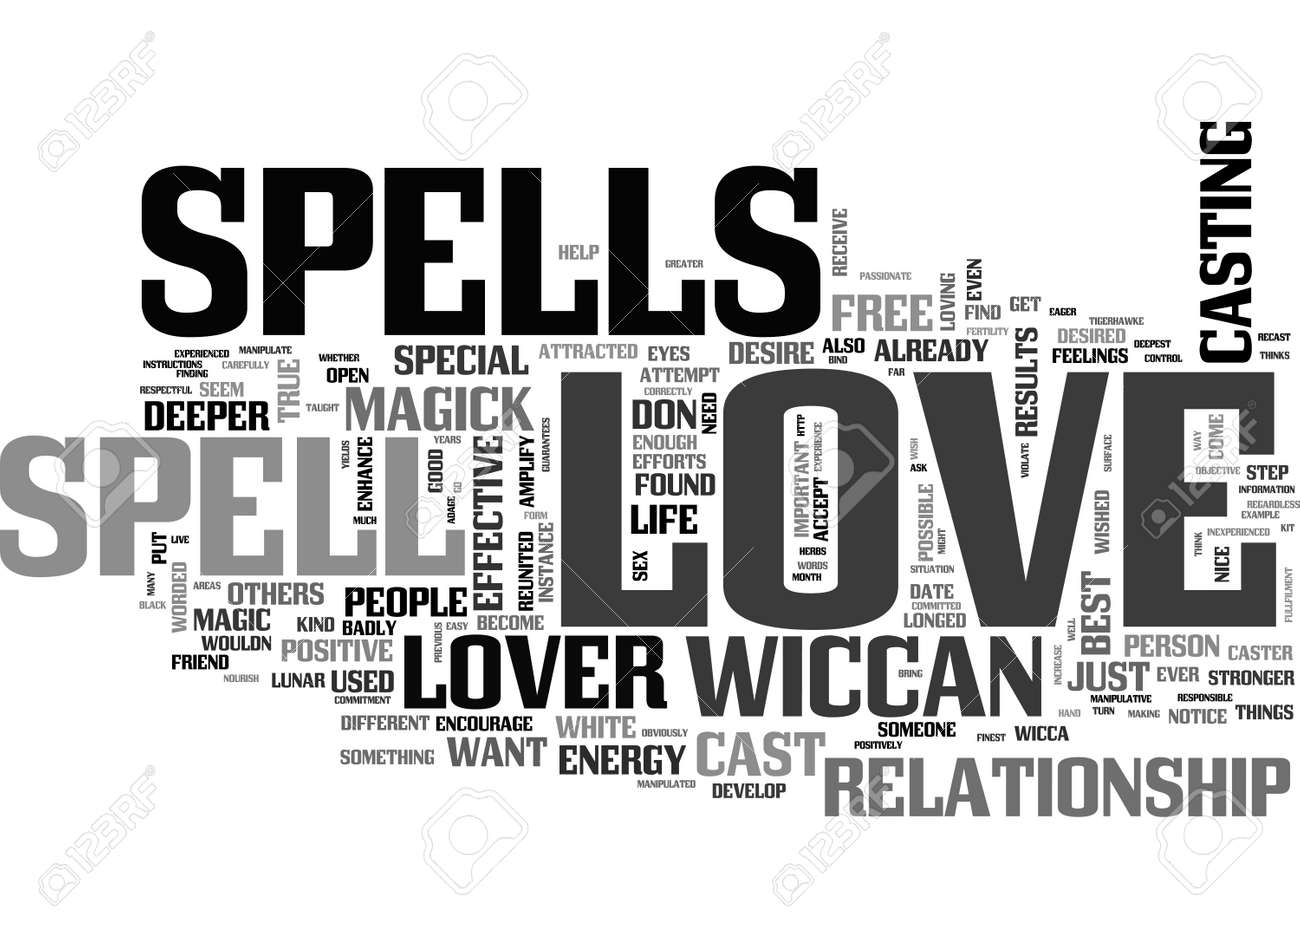 A LOVE SPELL COULD PUT SOME MAGIC IN YOUR LOVE LIFE TEXT WORD